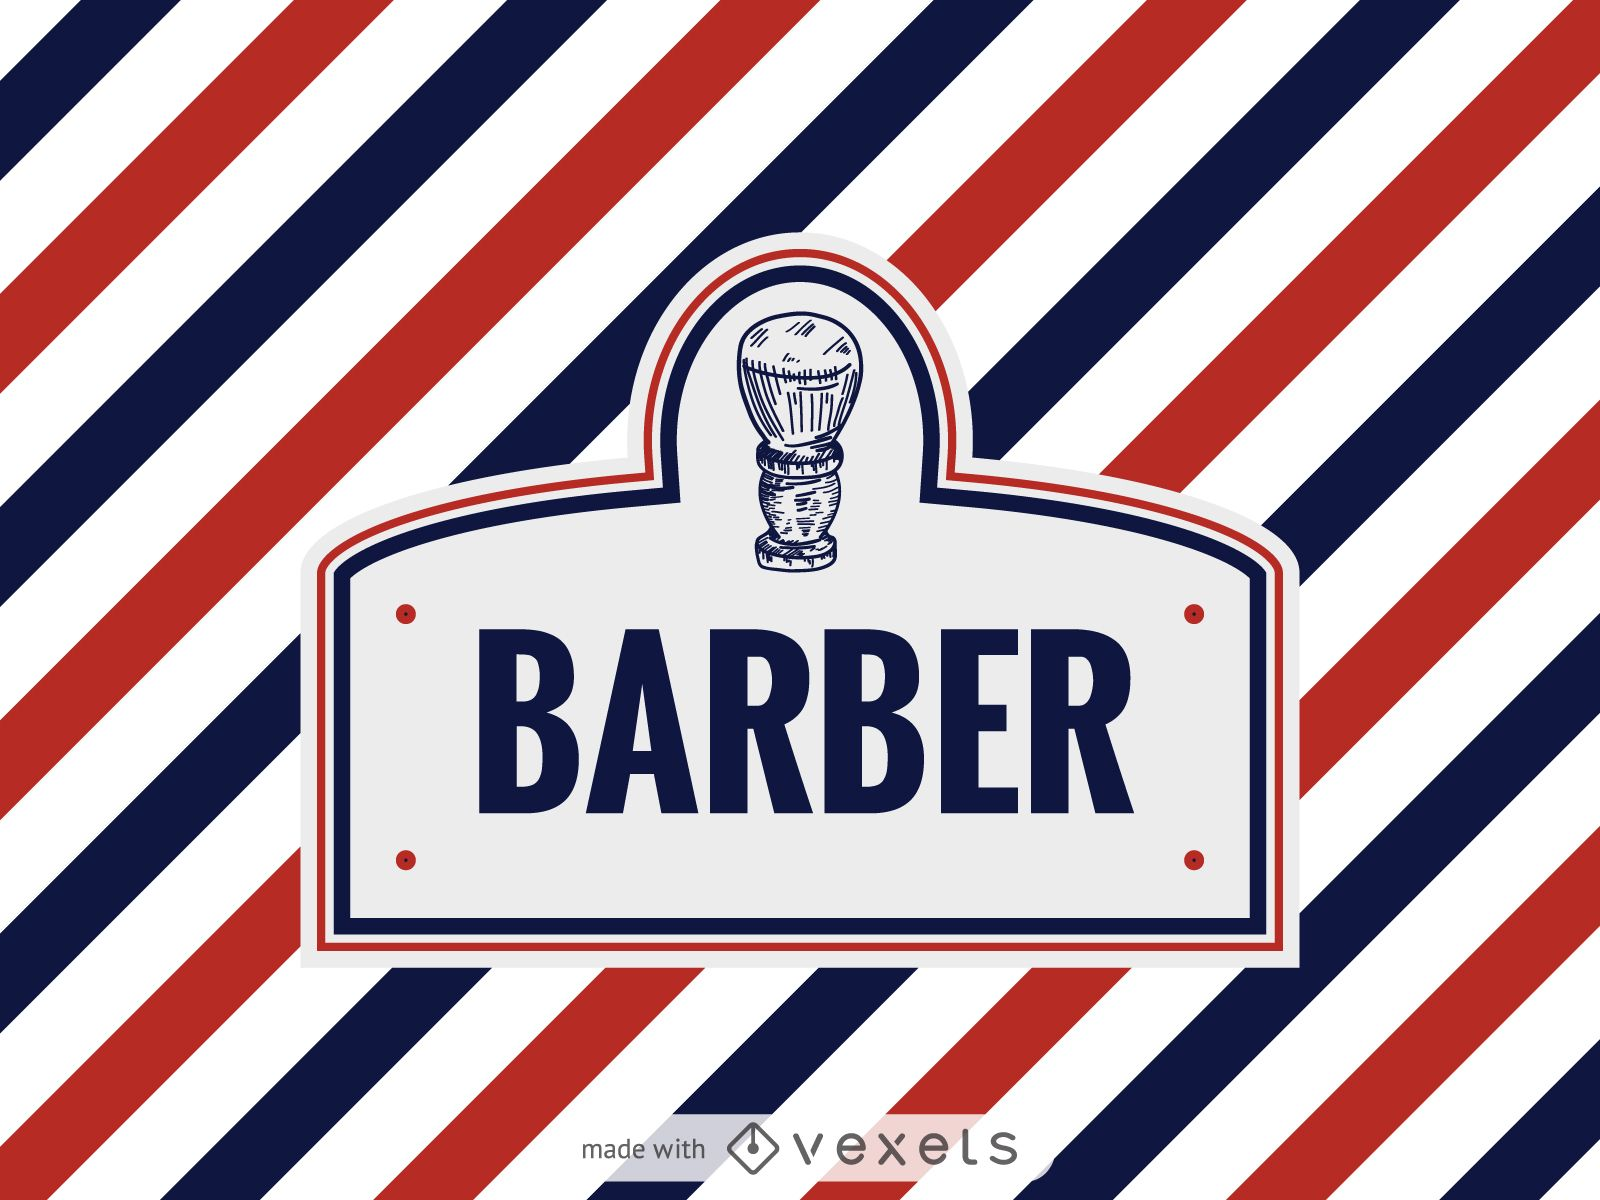 barber logo label maker editable design